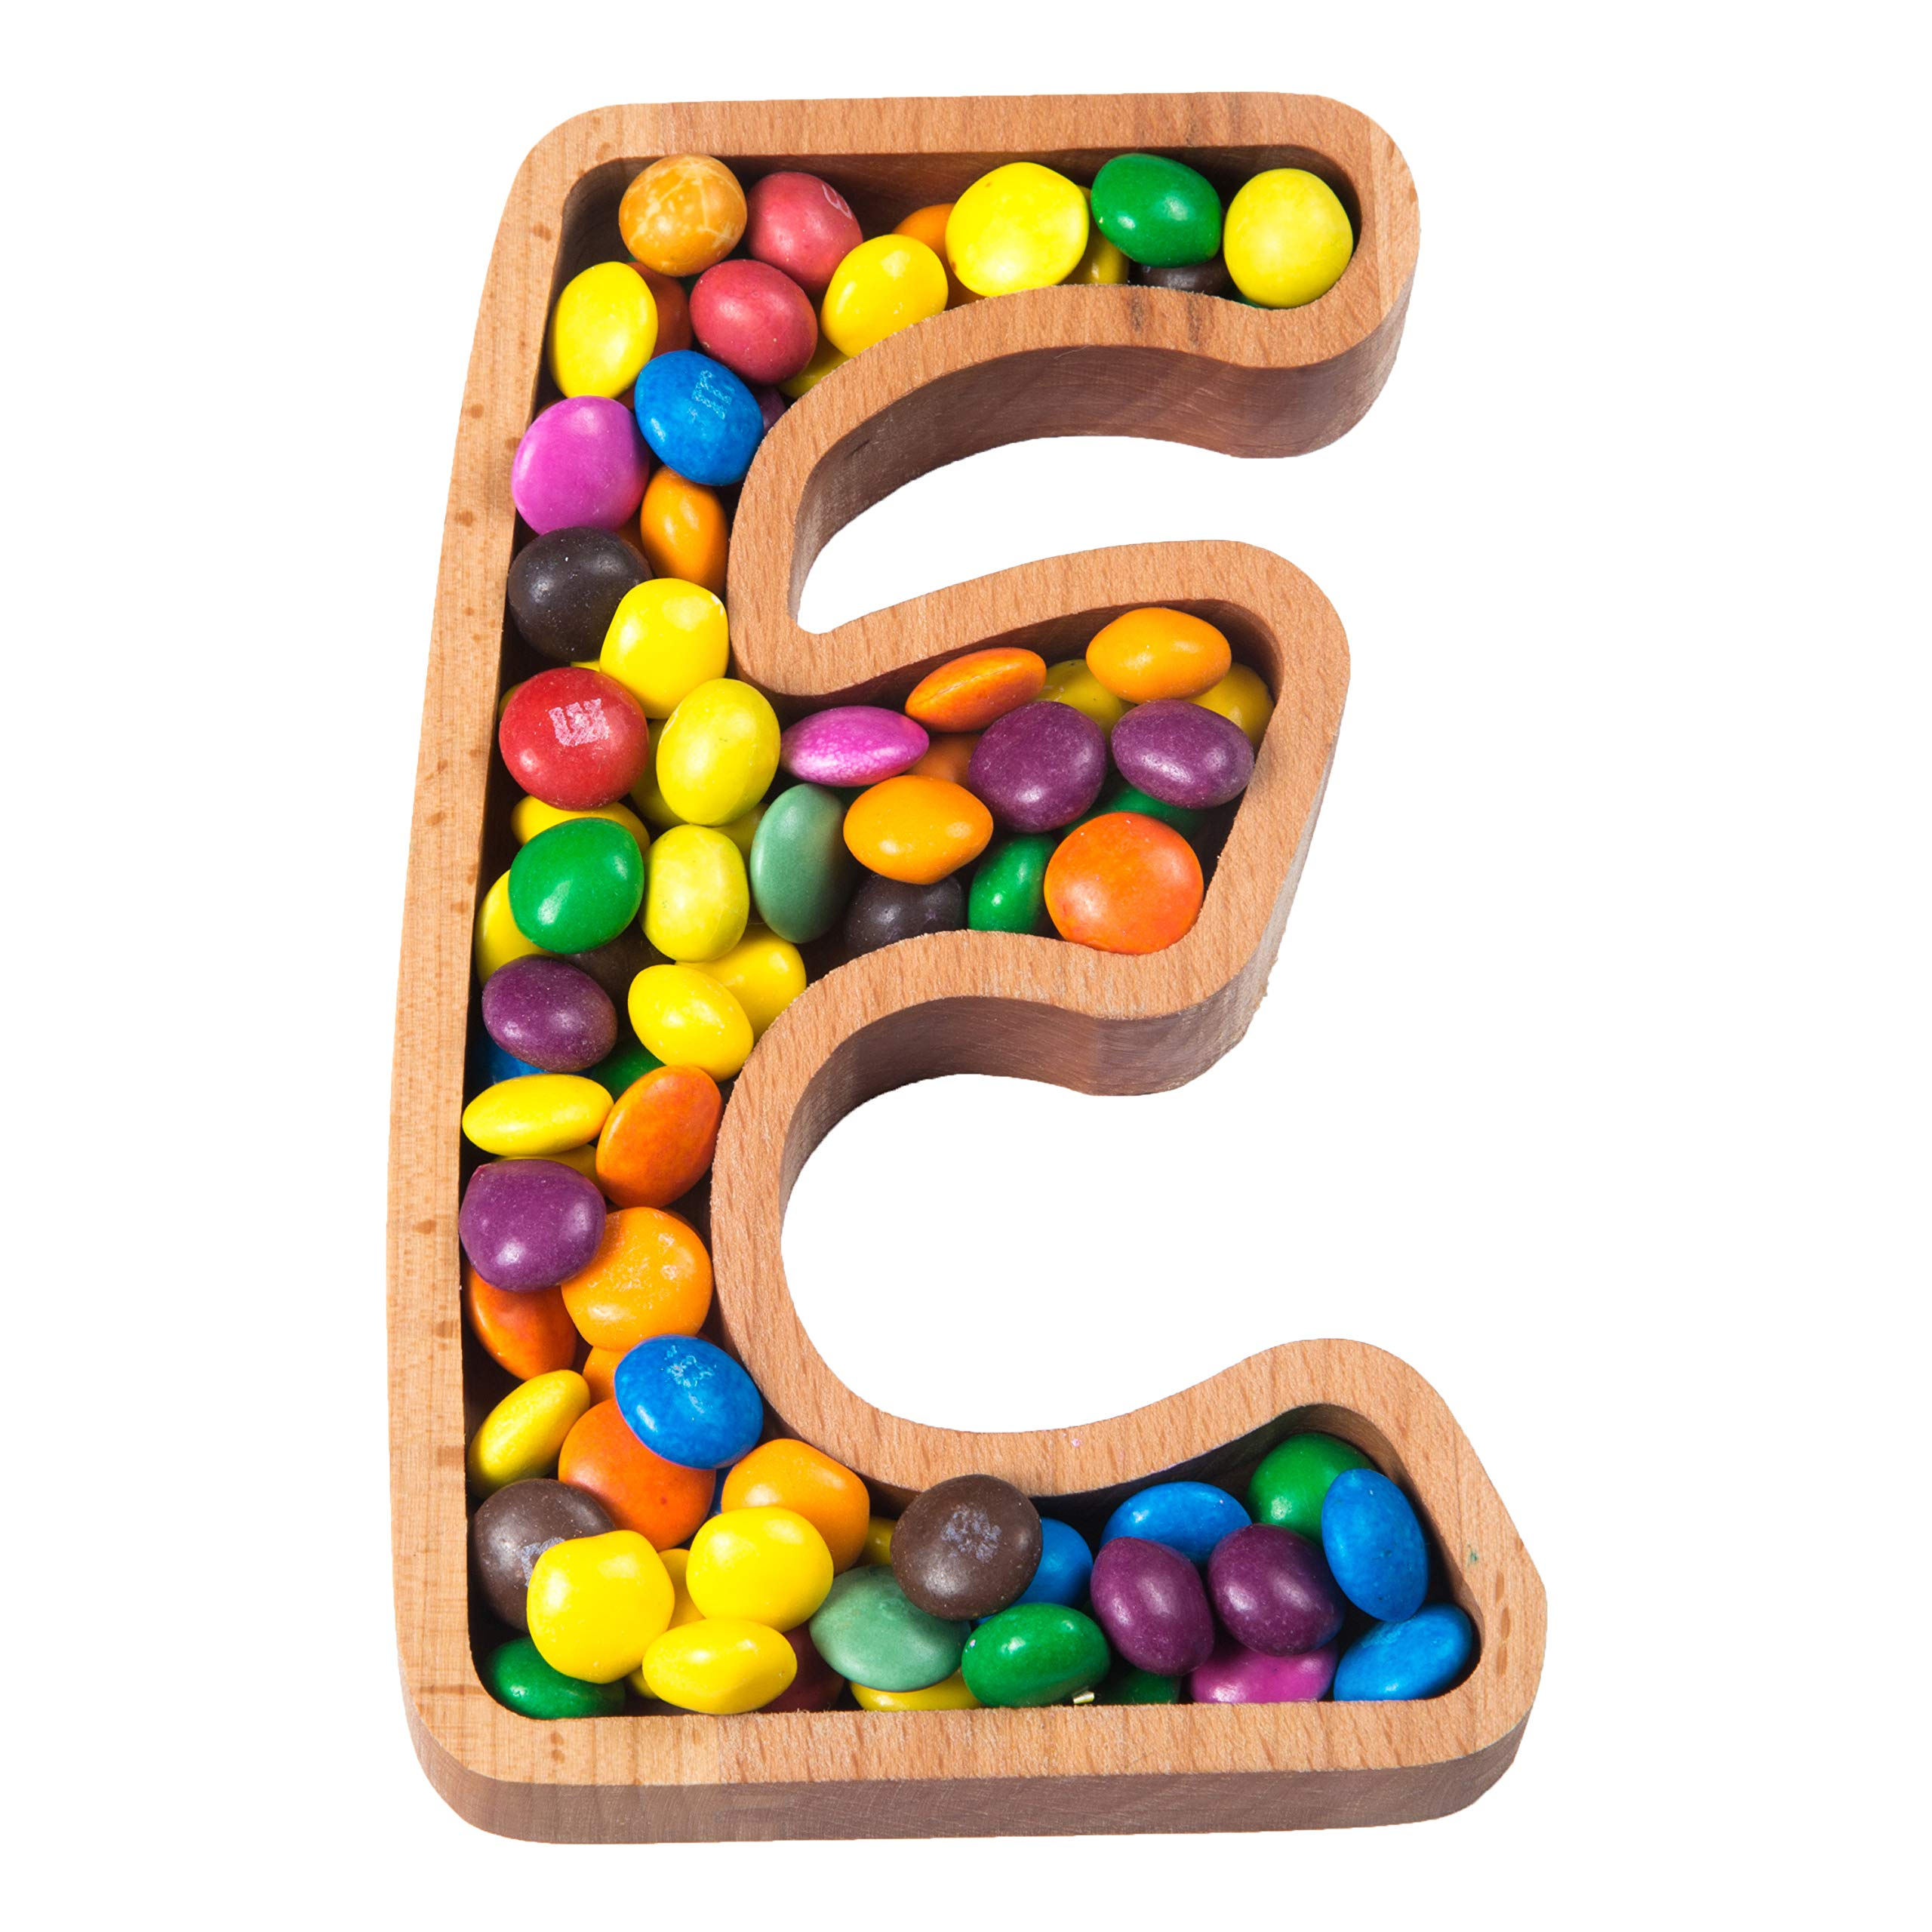 Wooden Letter E Candy Dish | Monogram Nut Bowl | Snack, Cookie, Cracker Serving Plate | Decorative Display, Home Accessory | Unique Gift Idea | for Date, Anniversary, Baby Shower, Birthday Party